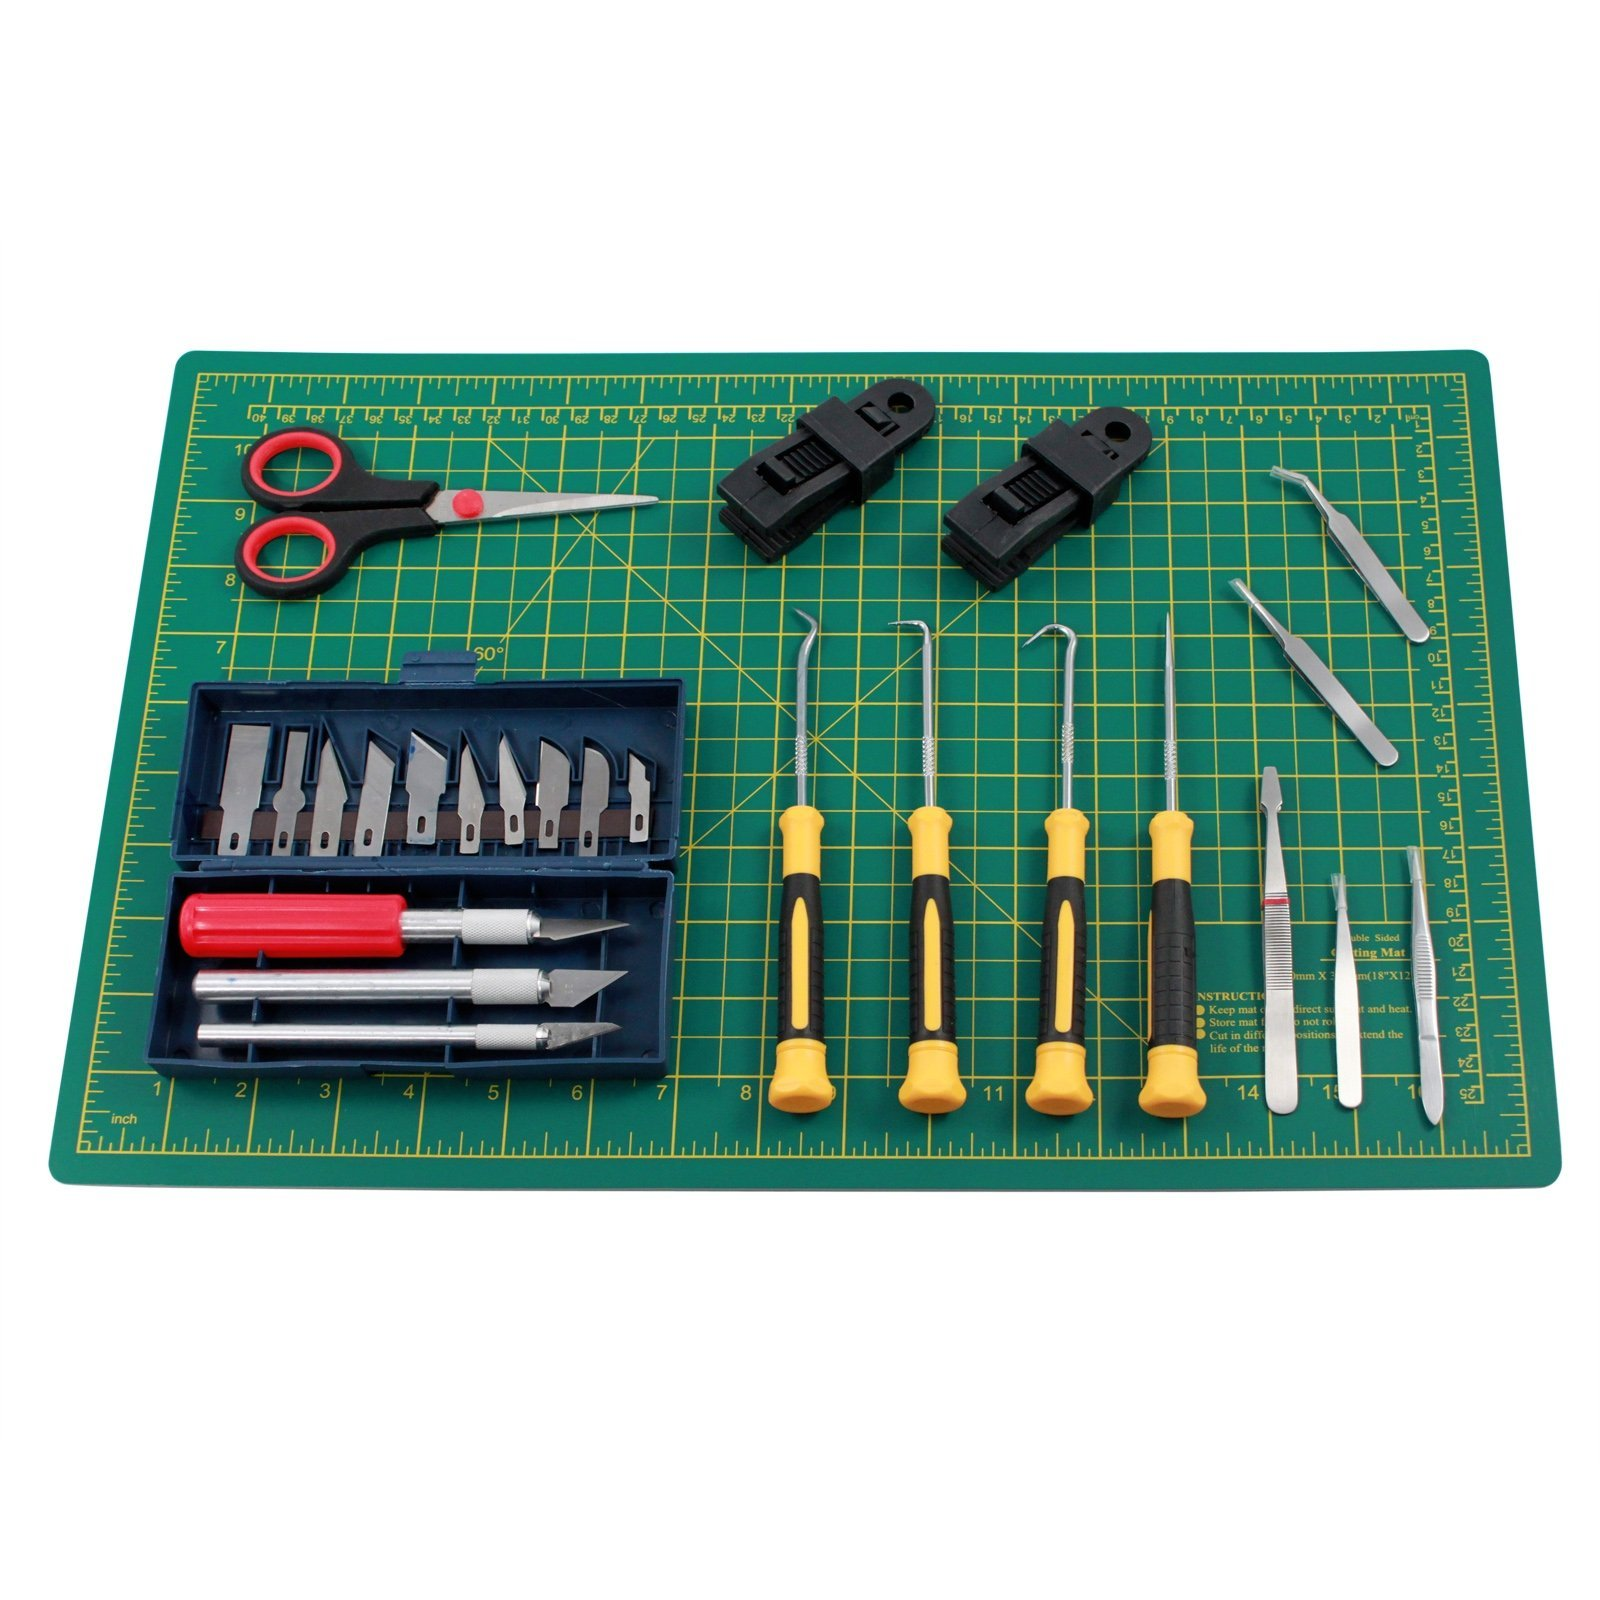 Deluxe Hobby Craft DIY Vinyl Cutting Kit with Self Healing Mat Clamps and Knives